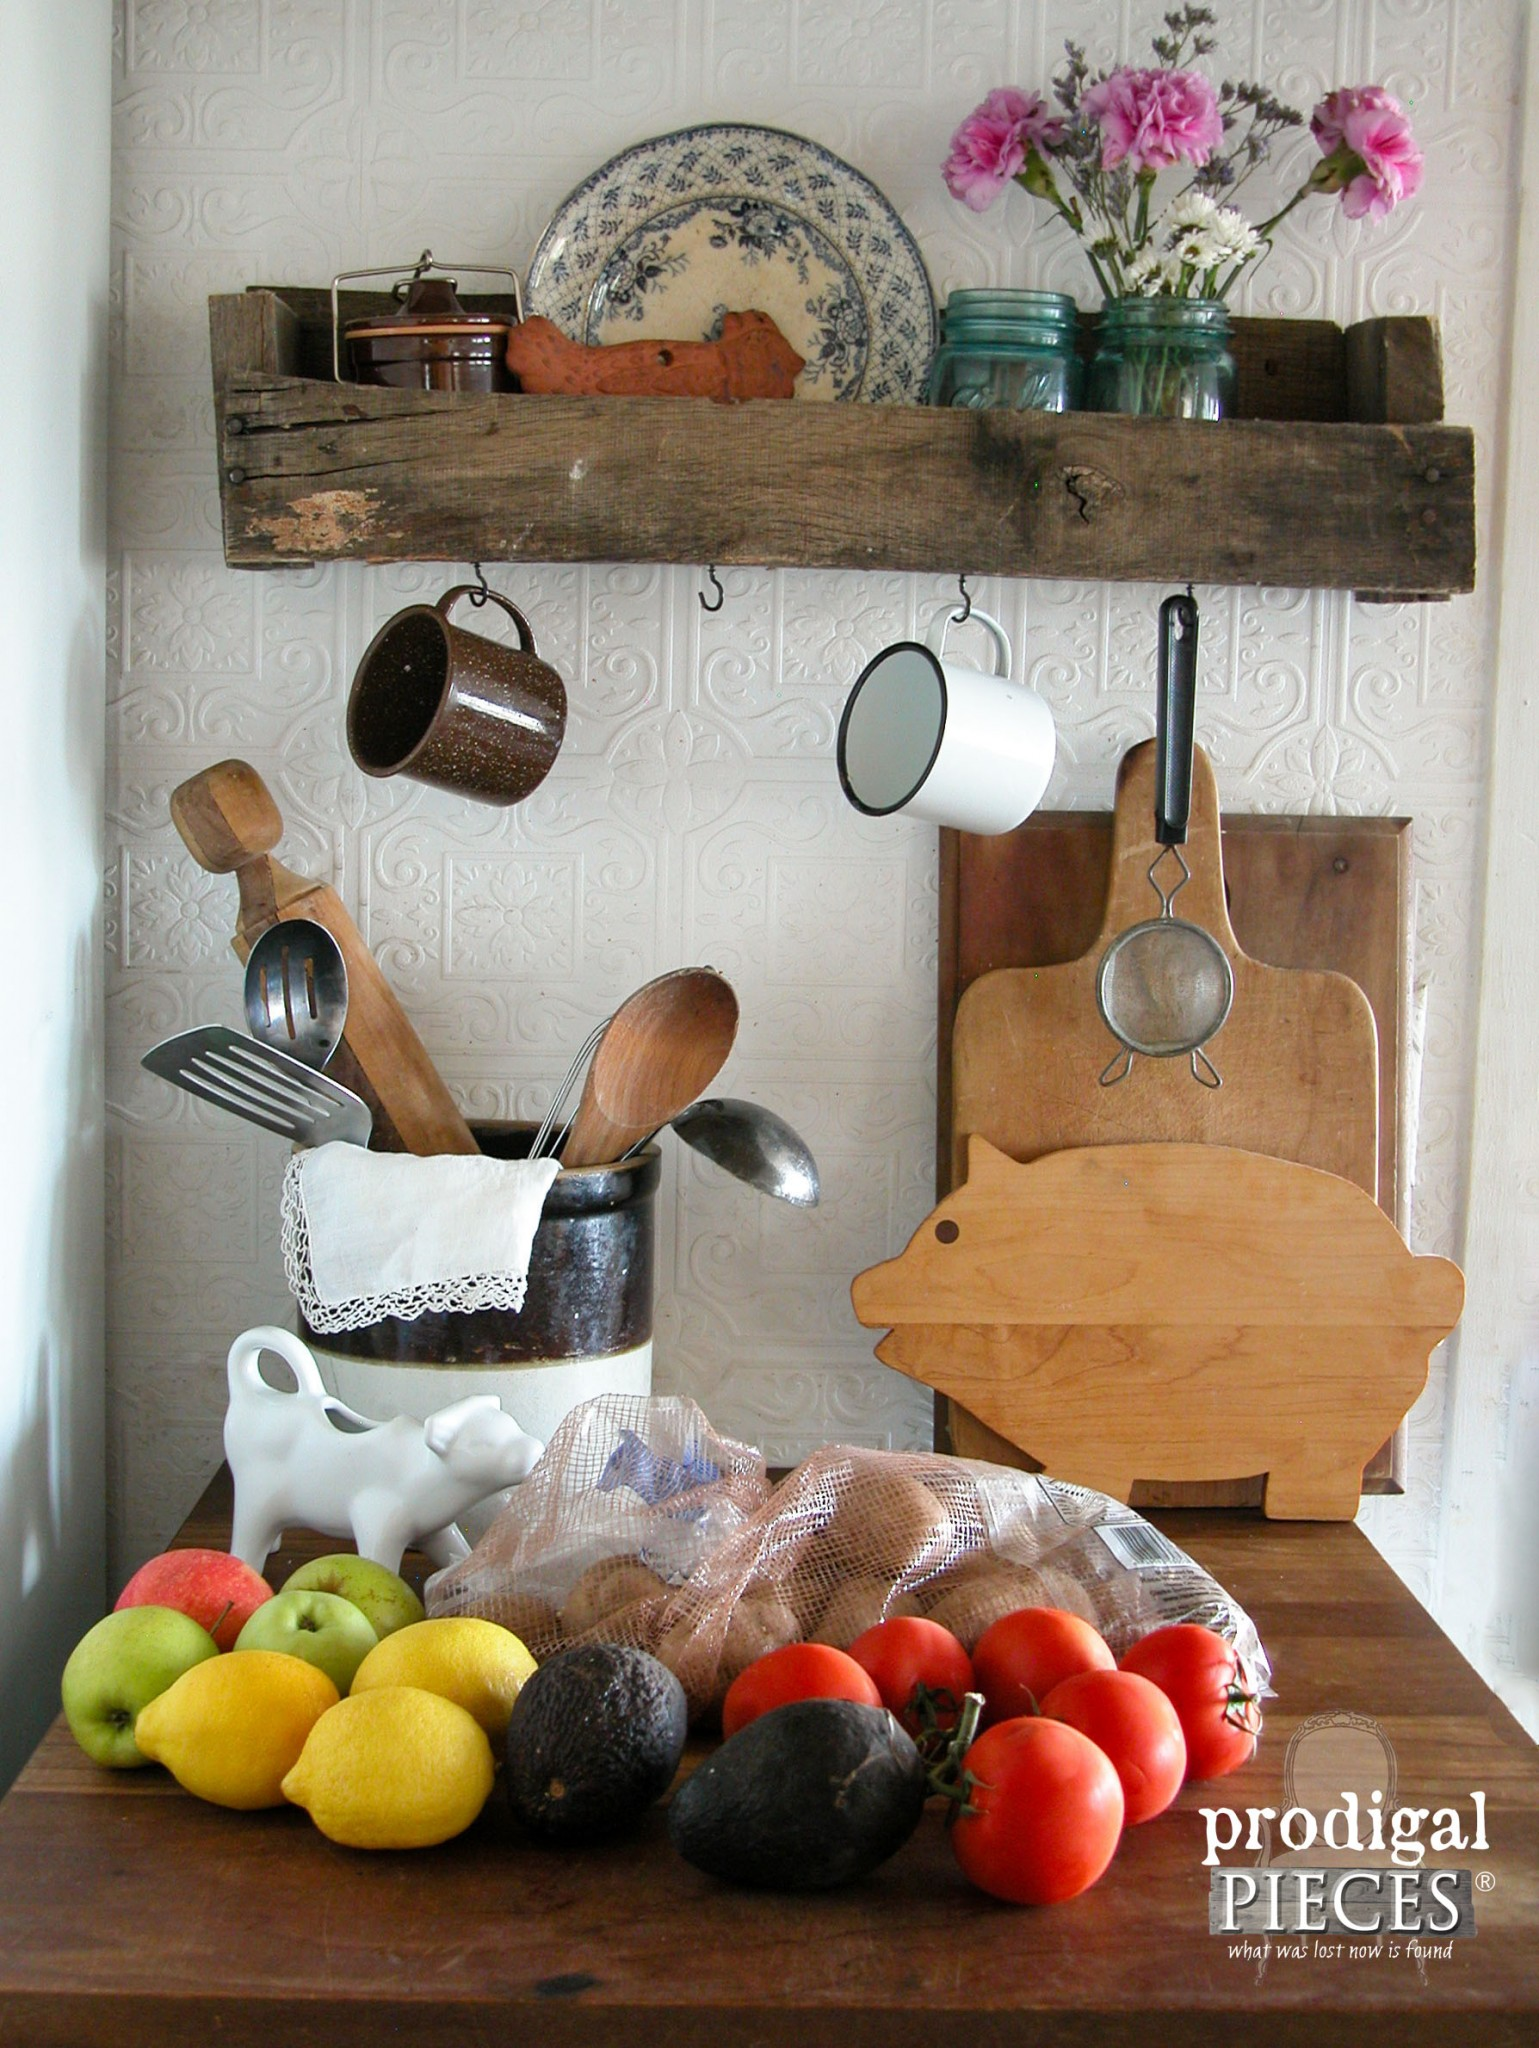 Kitchen Counter Clutter Before Storage Bin | Prodigal Pieces | www.prodigalpieces.com